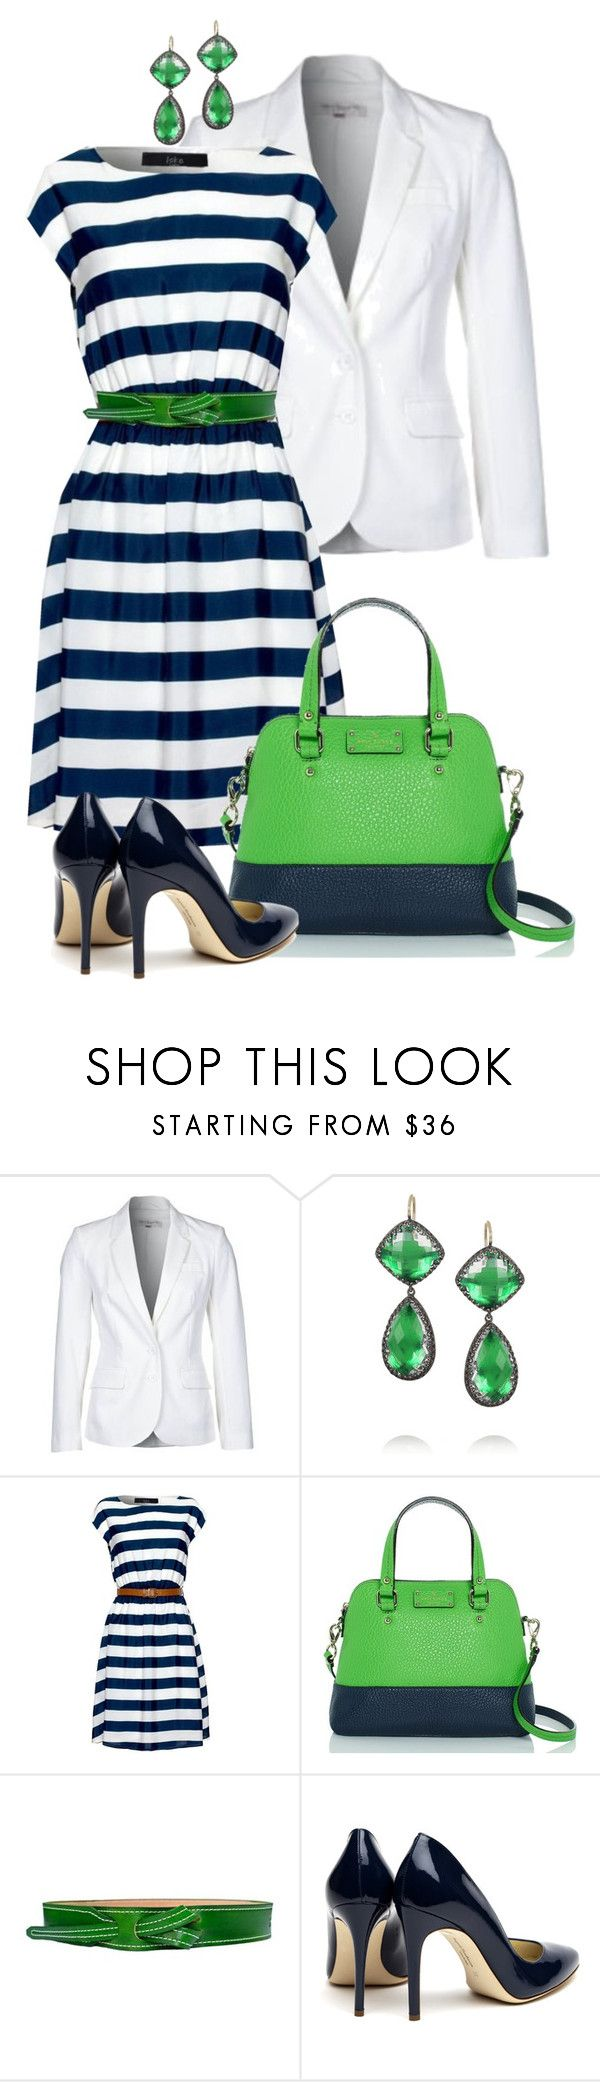 """""""navy stripes"""" by sagramora ❤ liked on Polyvore featuring French Connection, Larkspur & Hawk, Iska, Kate Spade, Lombardi Leather and Rupert Sanderson"""